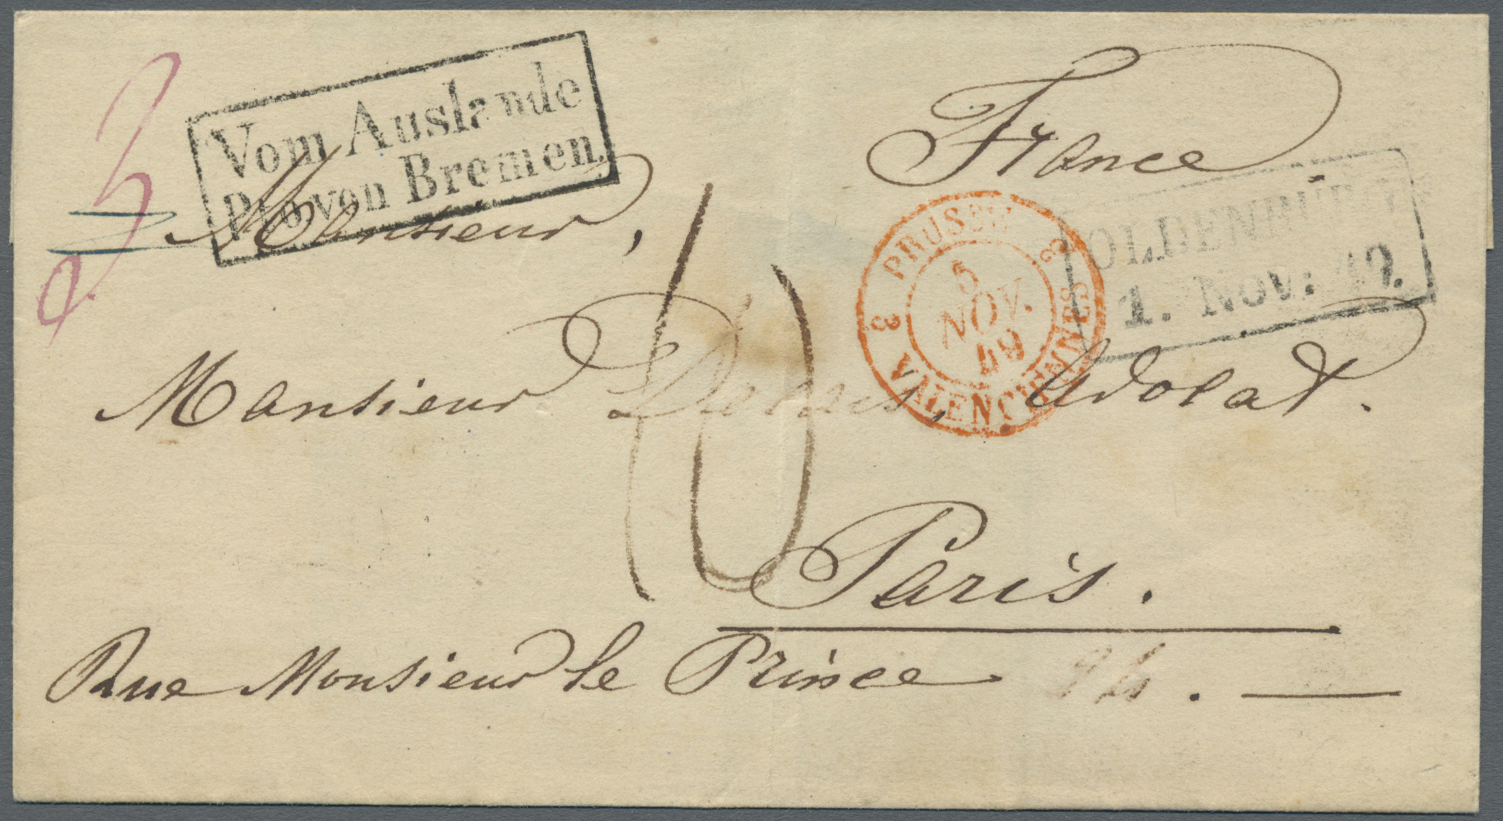 Gärtner Bremen Stamp Auction Bremen Stempel Auction 40 Germany Picture